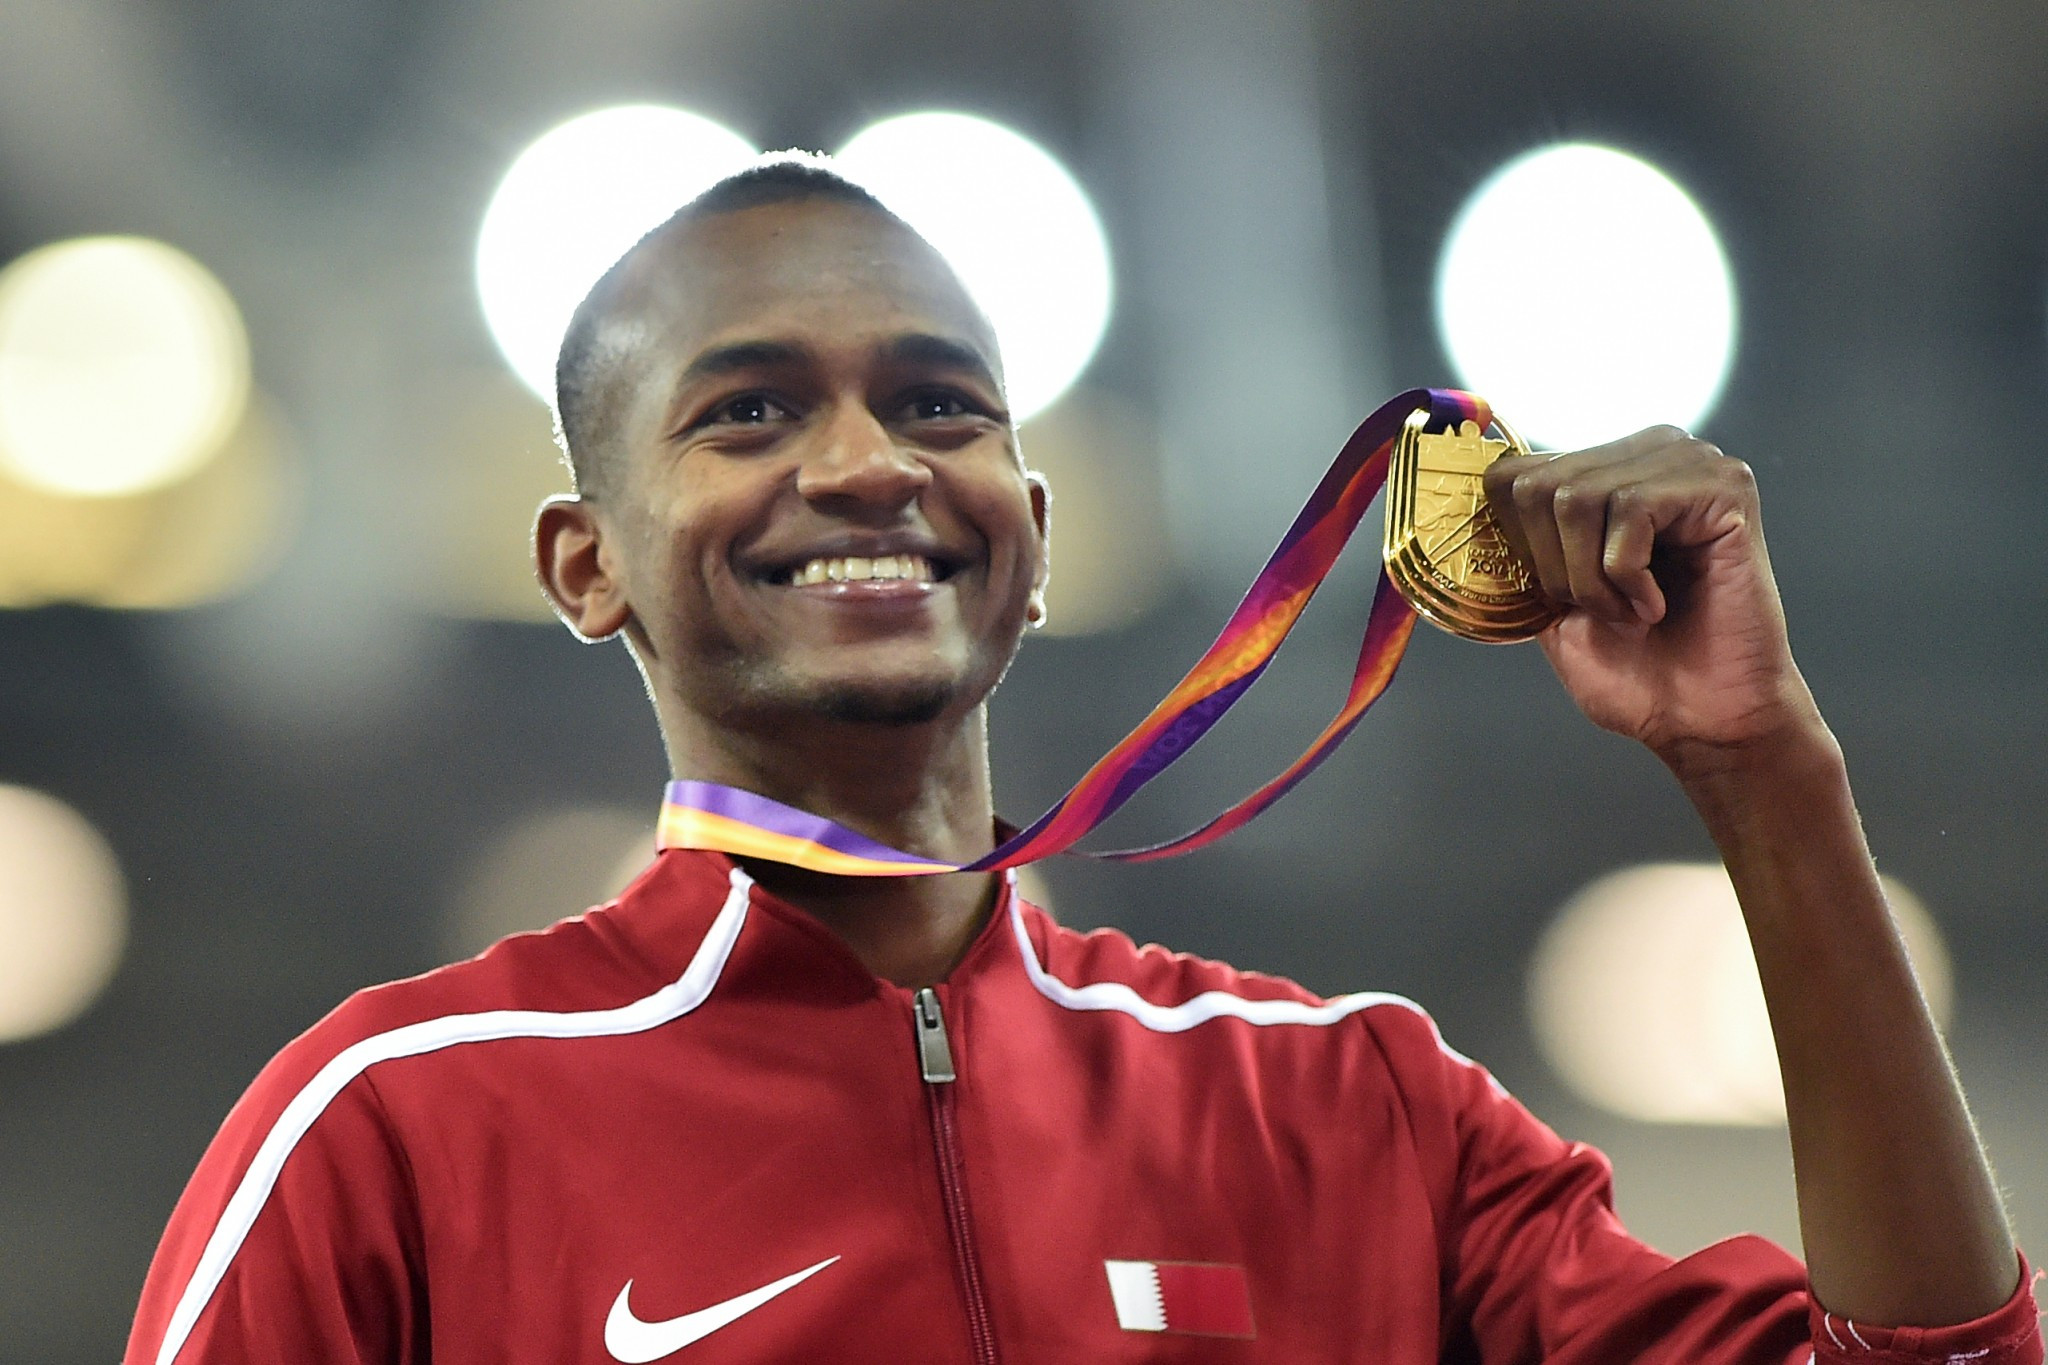 Mutaz Essa Barshim claimed Qatari high jump gold today and is set to be the star of Doha 2019 ©Getty Images